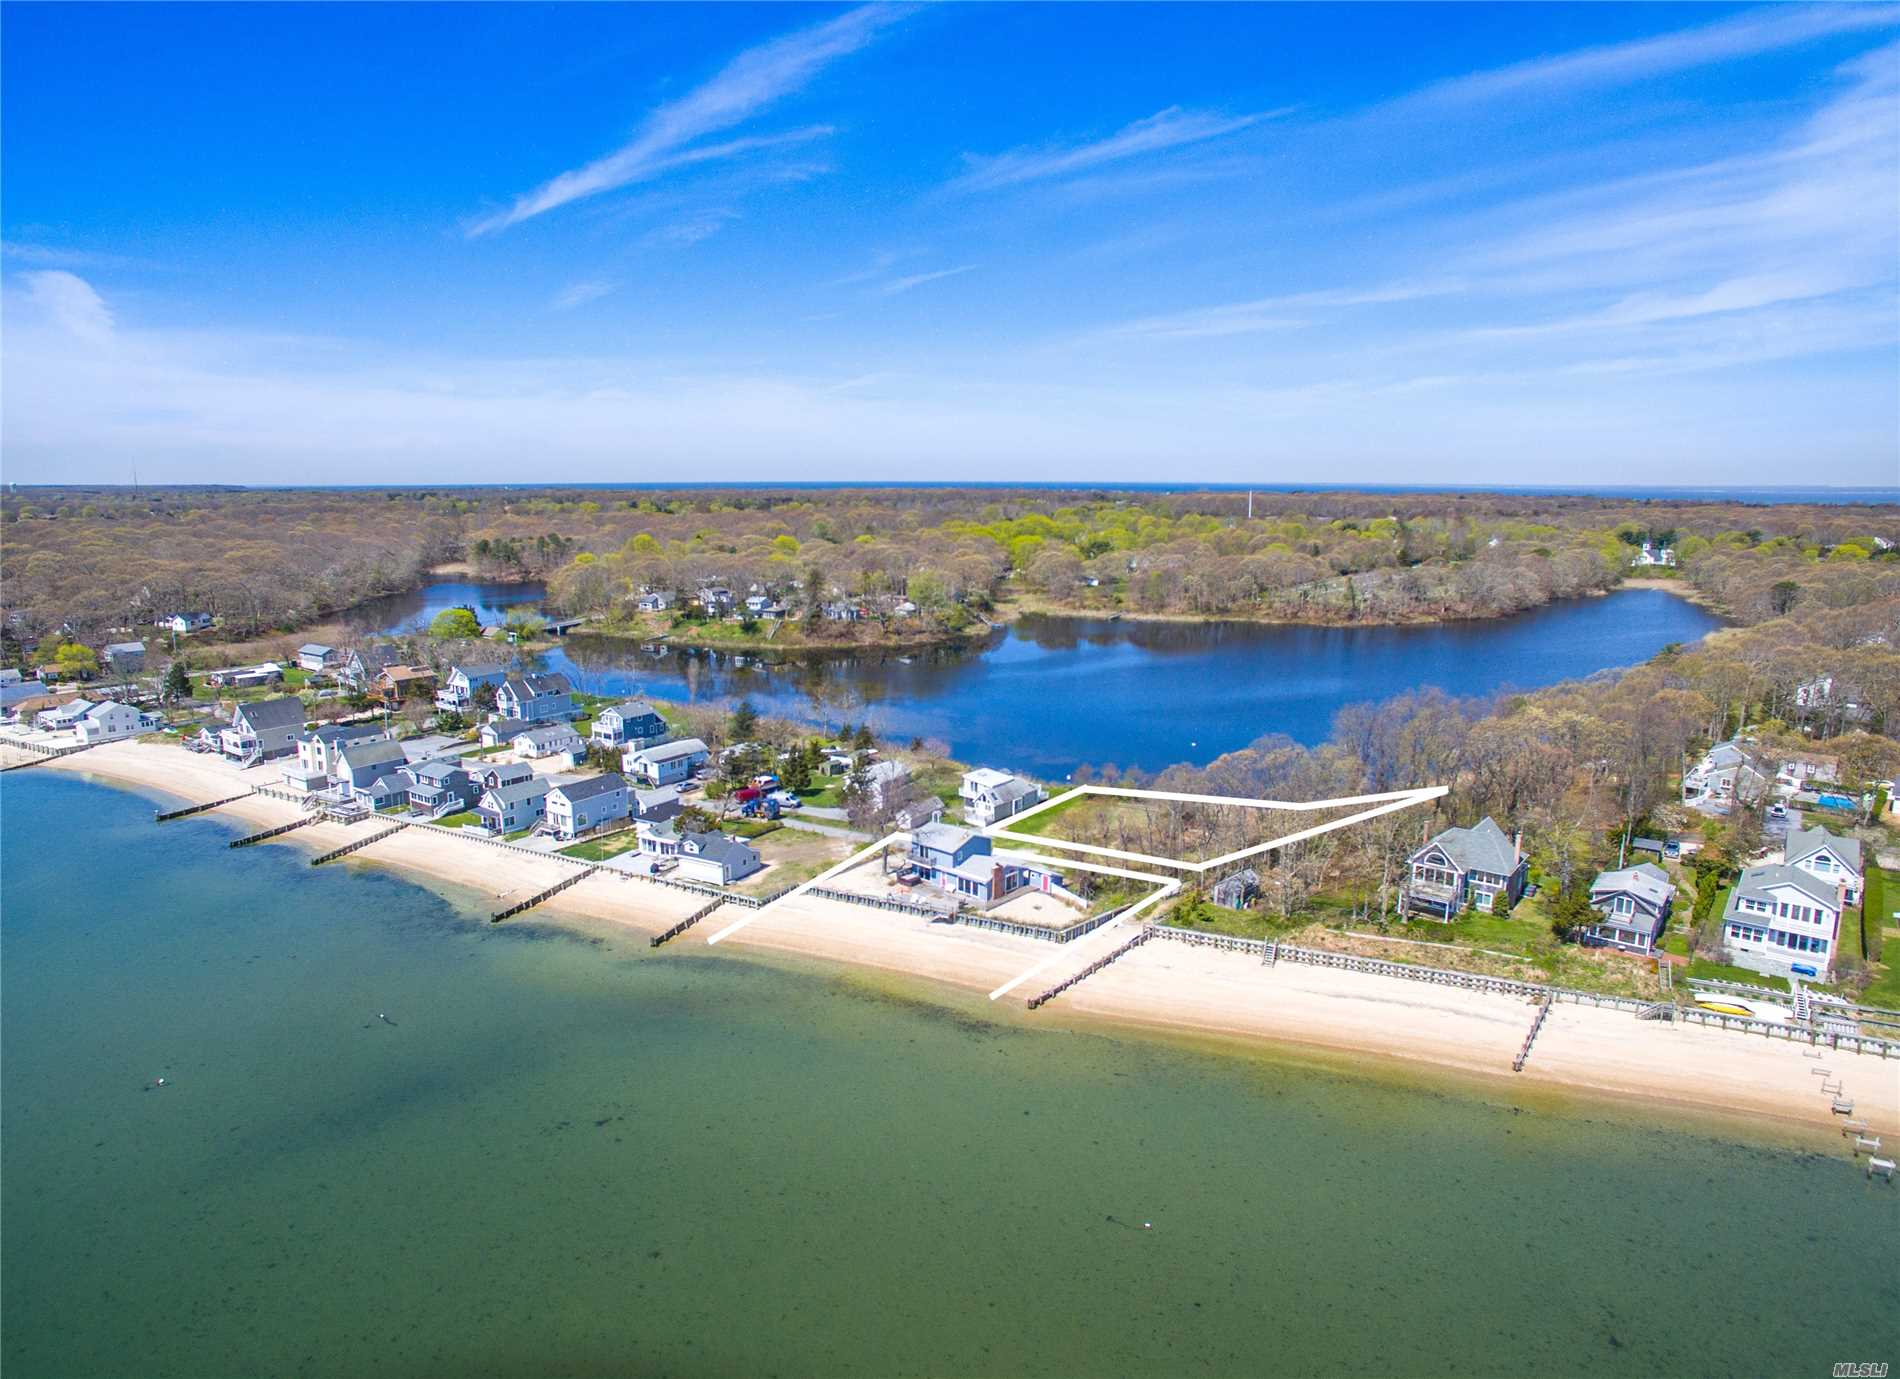 Beautiful Bayfront Home Within Quintessential North Fork Beach Community. Property Features 273' of Waterfront Between Gardners Bay & Lake Marion. Lower Level Offers 2 Beds, 1 Full Bath, Hwood Floors, Open Living Area Including Kitchen, LRoom & Dining Room Along w/ Walkouts To Mahogany Deck Leading To 100' Of Sugar Sand Beach. Upper Level Offers 1 Full Bath, Laundry Room & Master Bedroom w/ Unobstructed Views Of Lake Marion & Gardners Bay! Sale Includes Two Lots (1000.31.17.19) (1000.31.18.18)